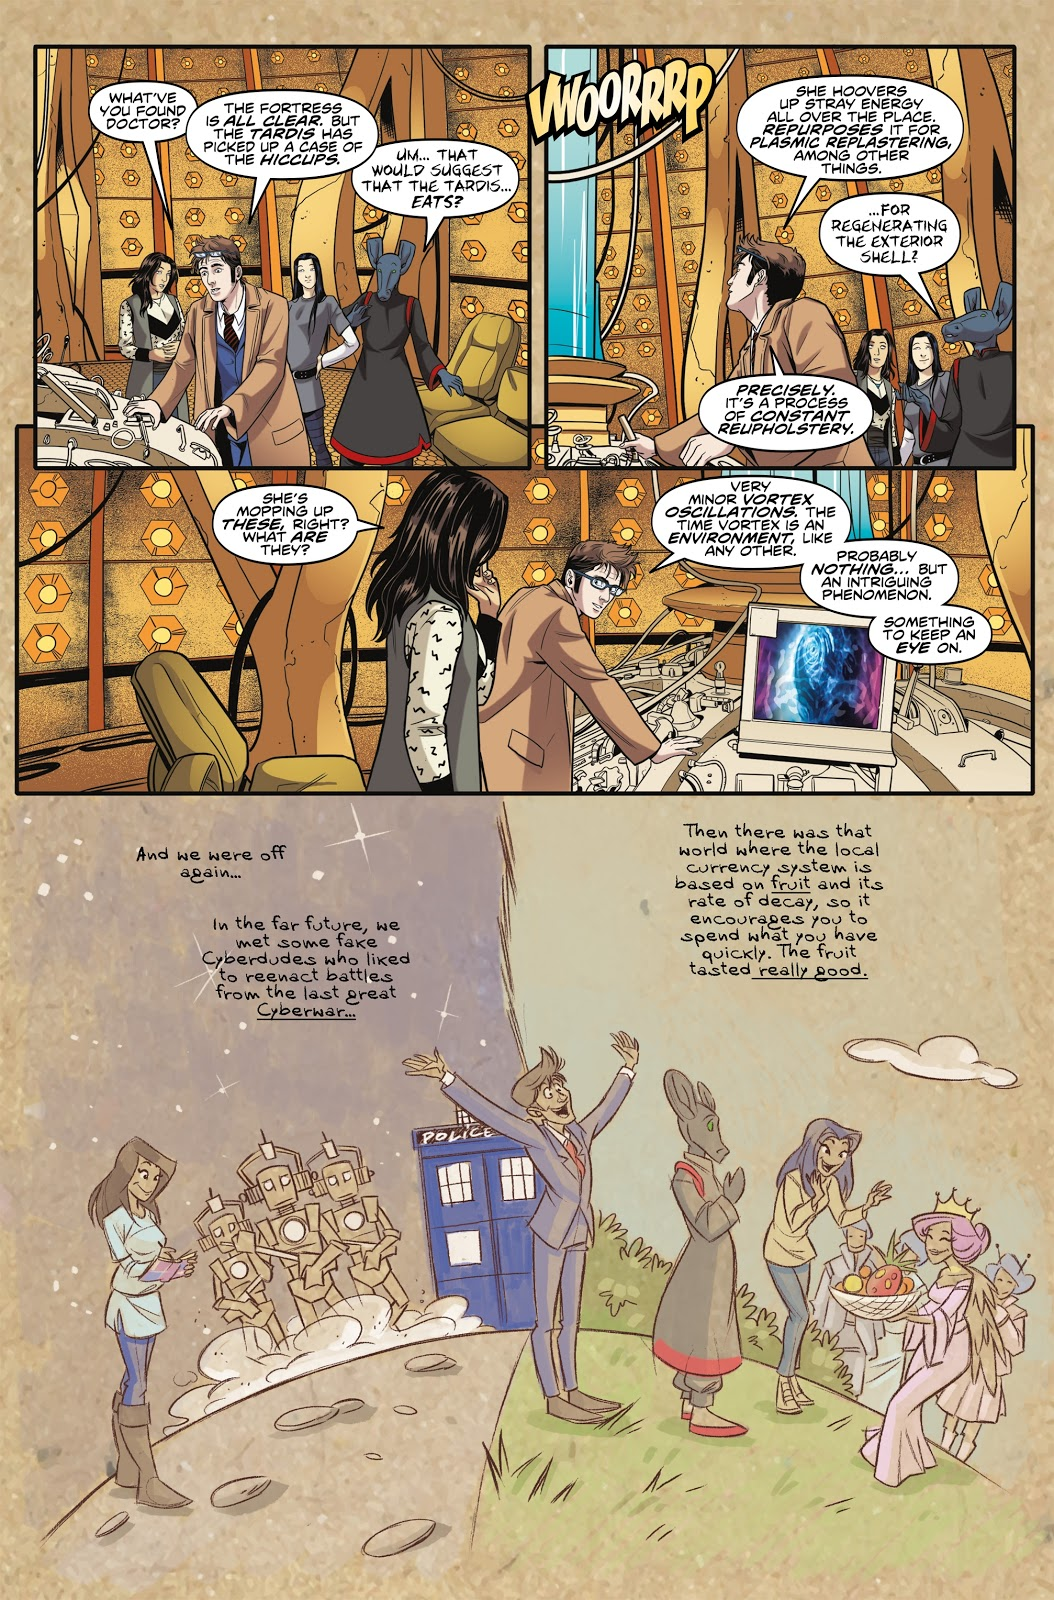 Doctor Who The Tenth Doctor Vol 9 Vortex Butterflies review